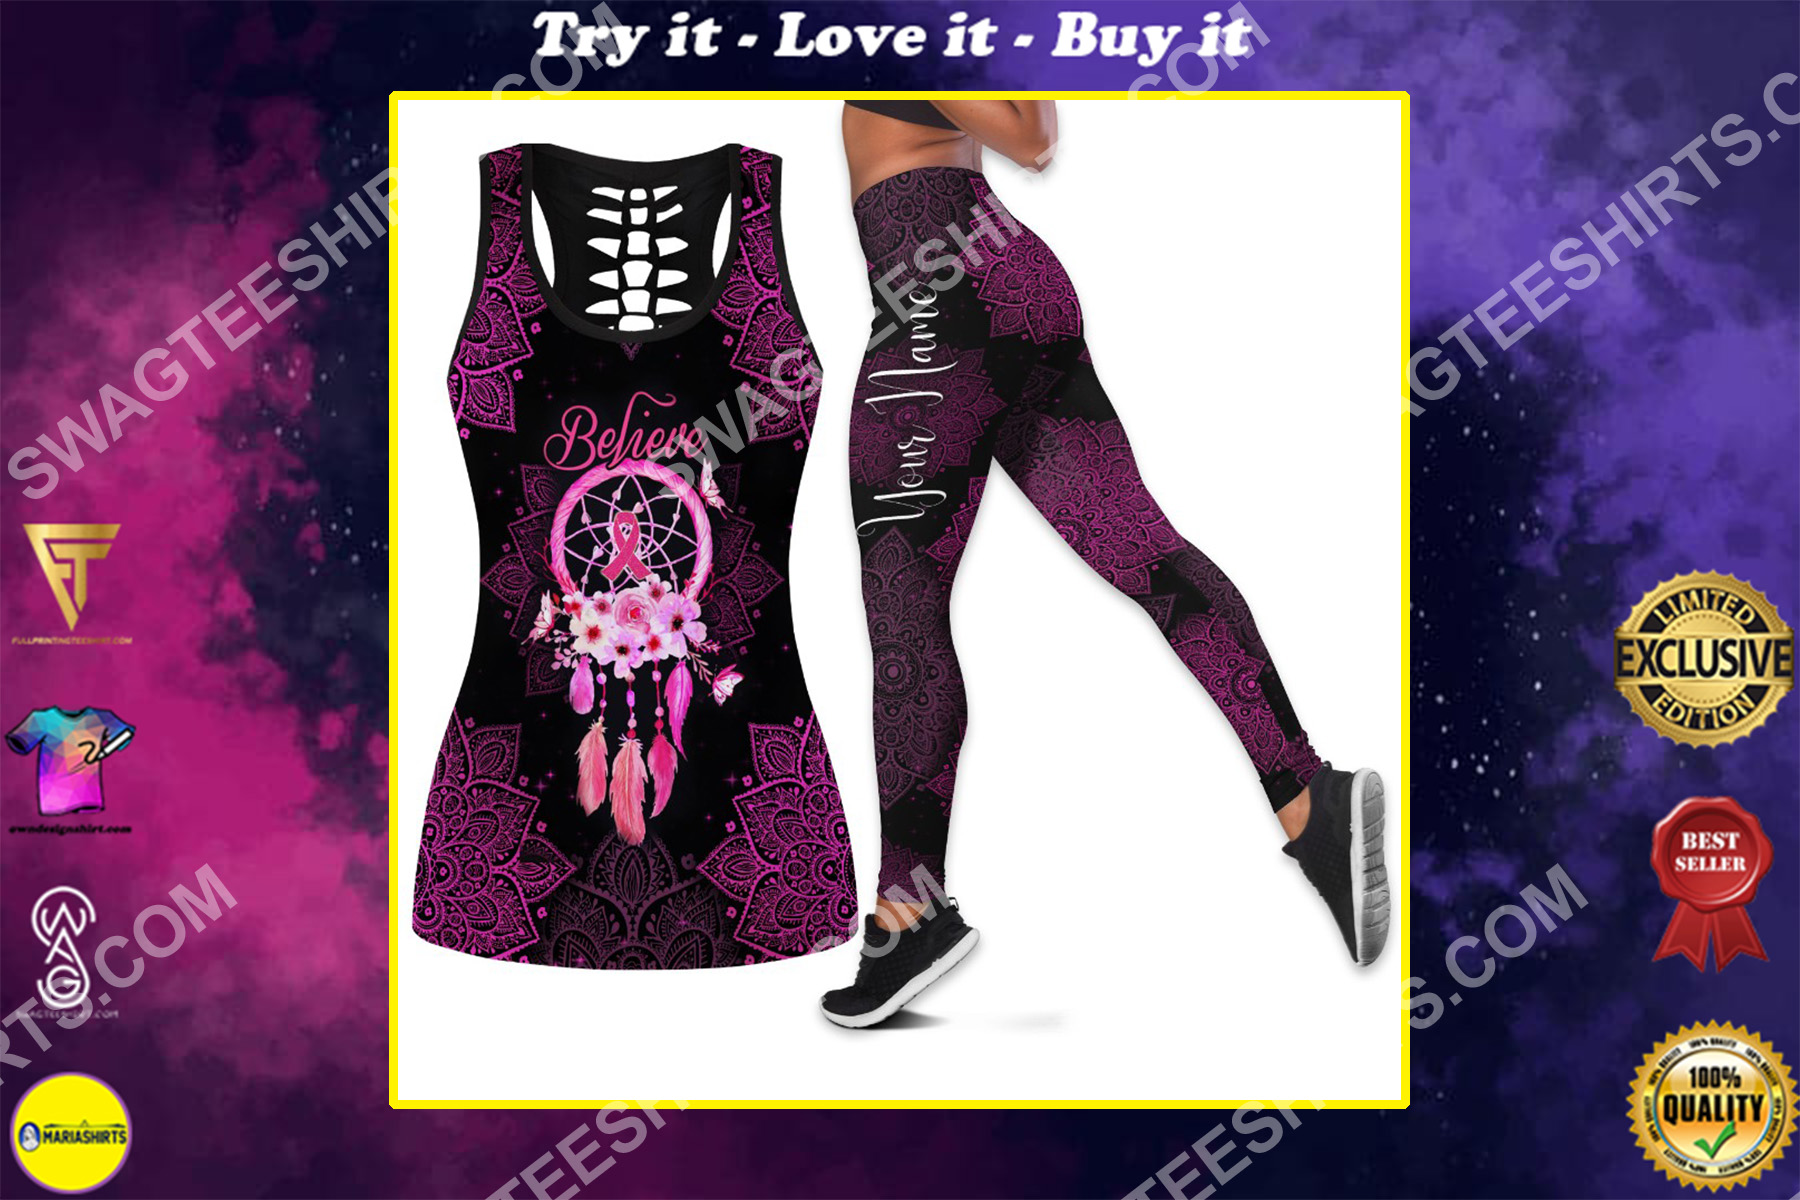 custom name believe dream catcher breast cancer all over printed set sports outfit